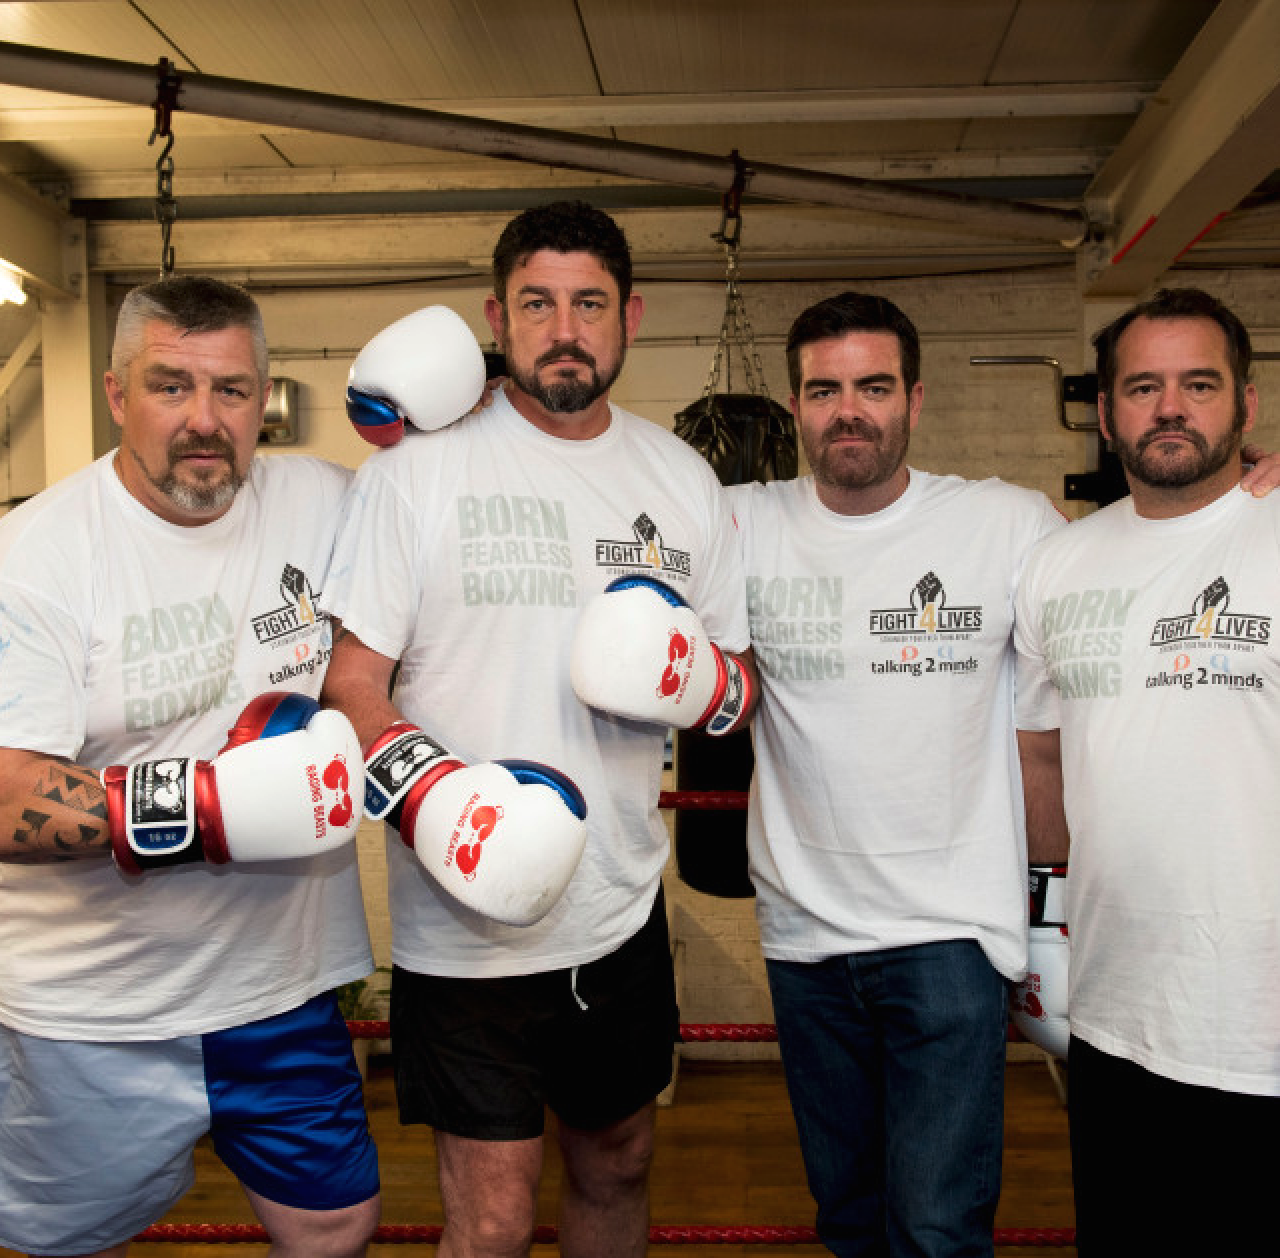 charity boxing ex-sas